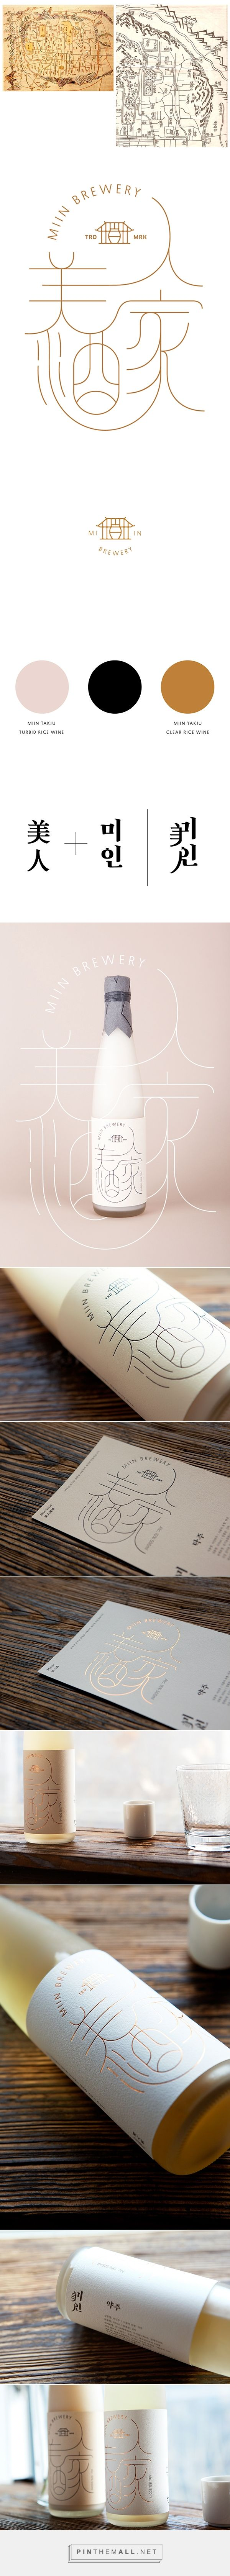 Miin Brewery on Packaging Design Served curated by Packaging Diva PD. Lovely rice wine packaging branding.